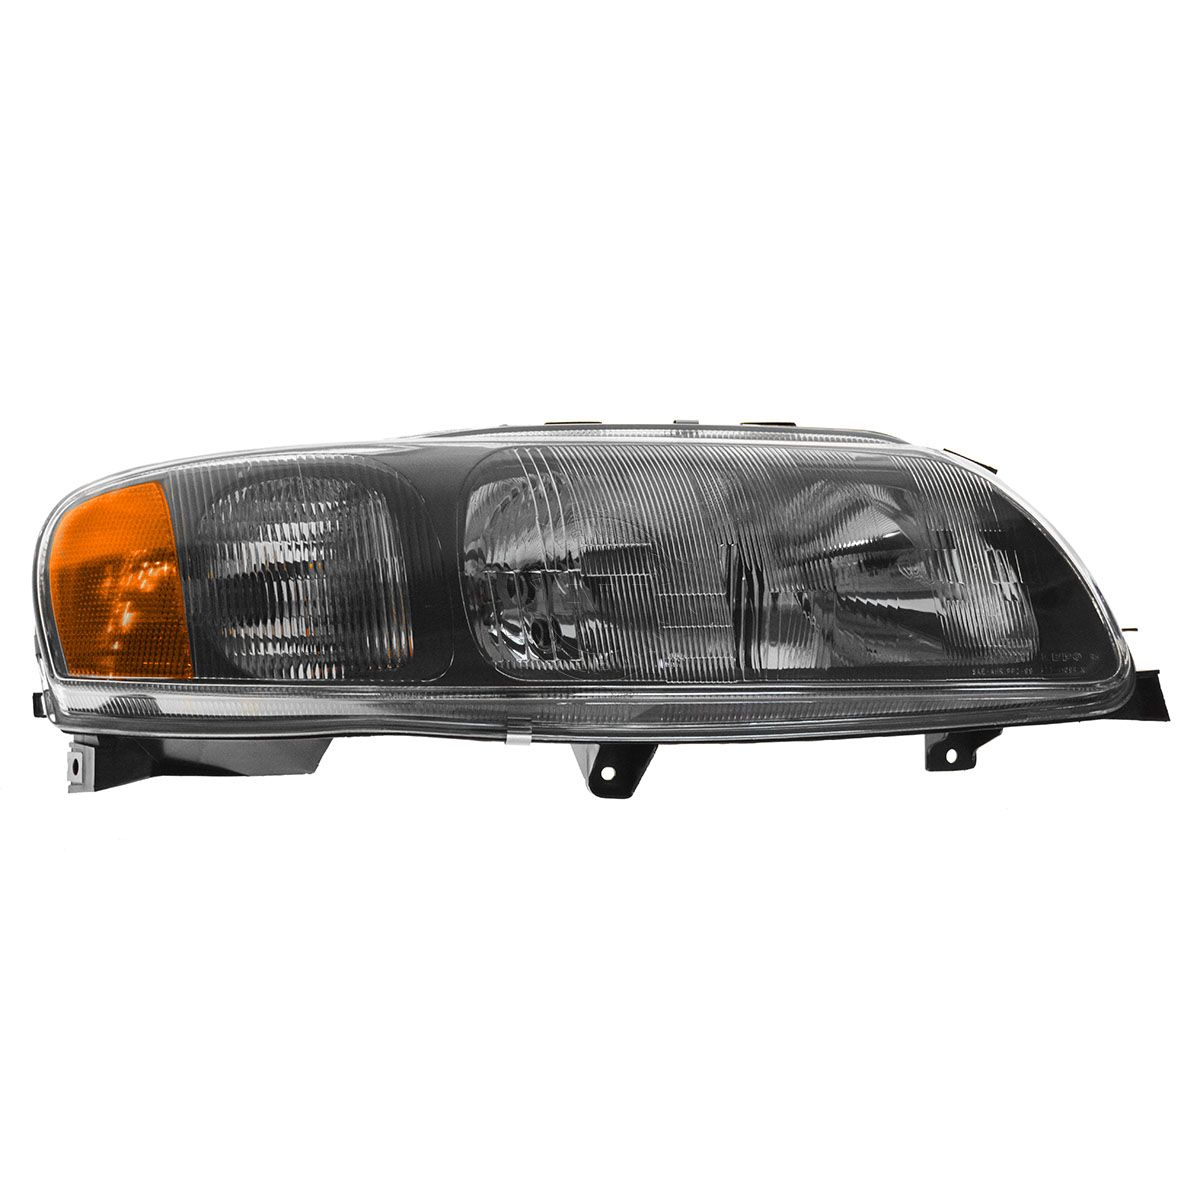 Headlight Headlamp Passenger Side Right RH NEW for 01-04 Volvo V70 XC70 Wagon | eBay